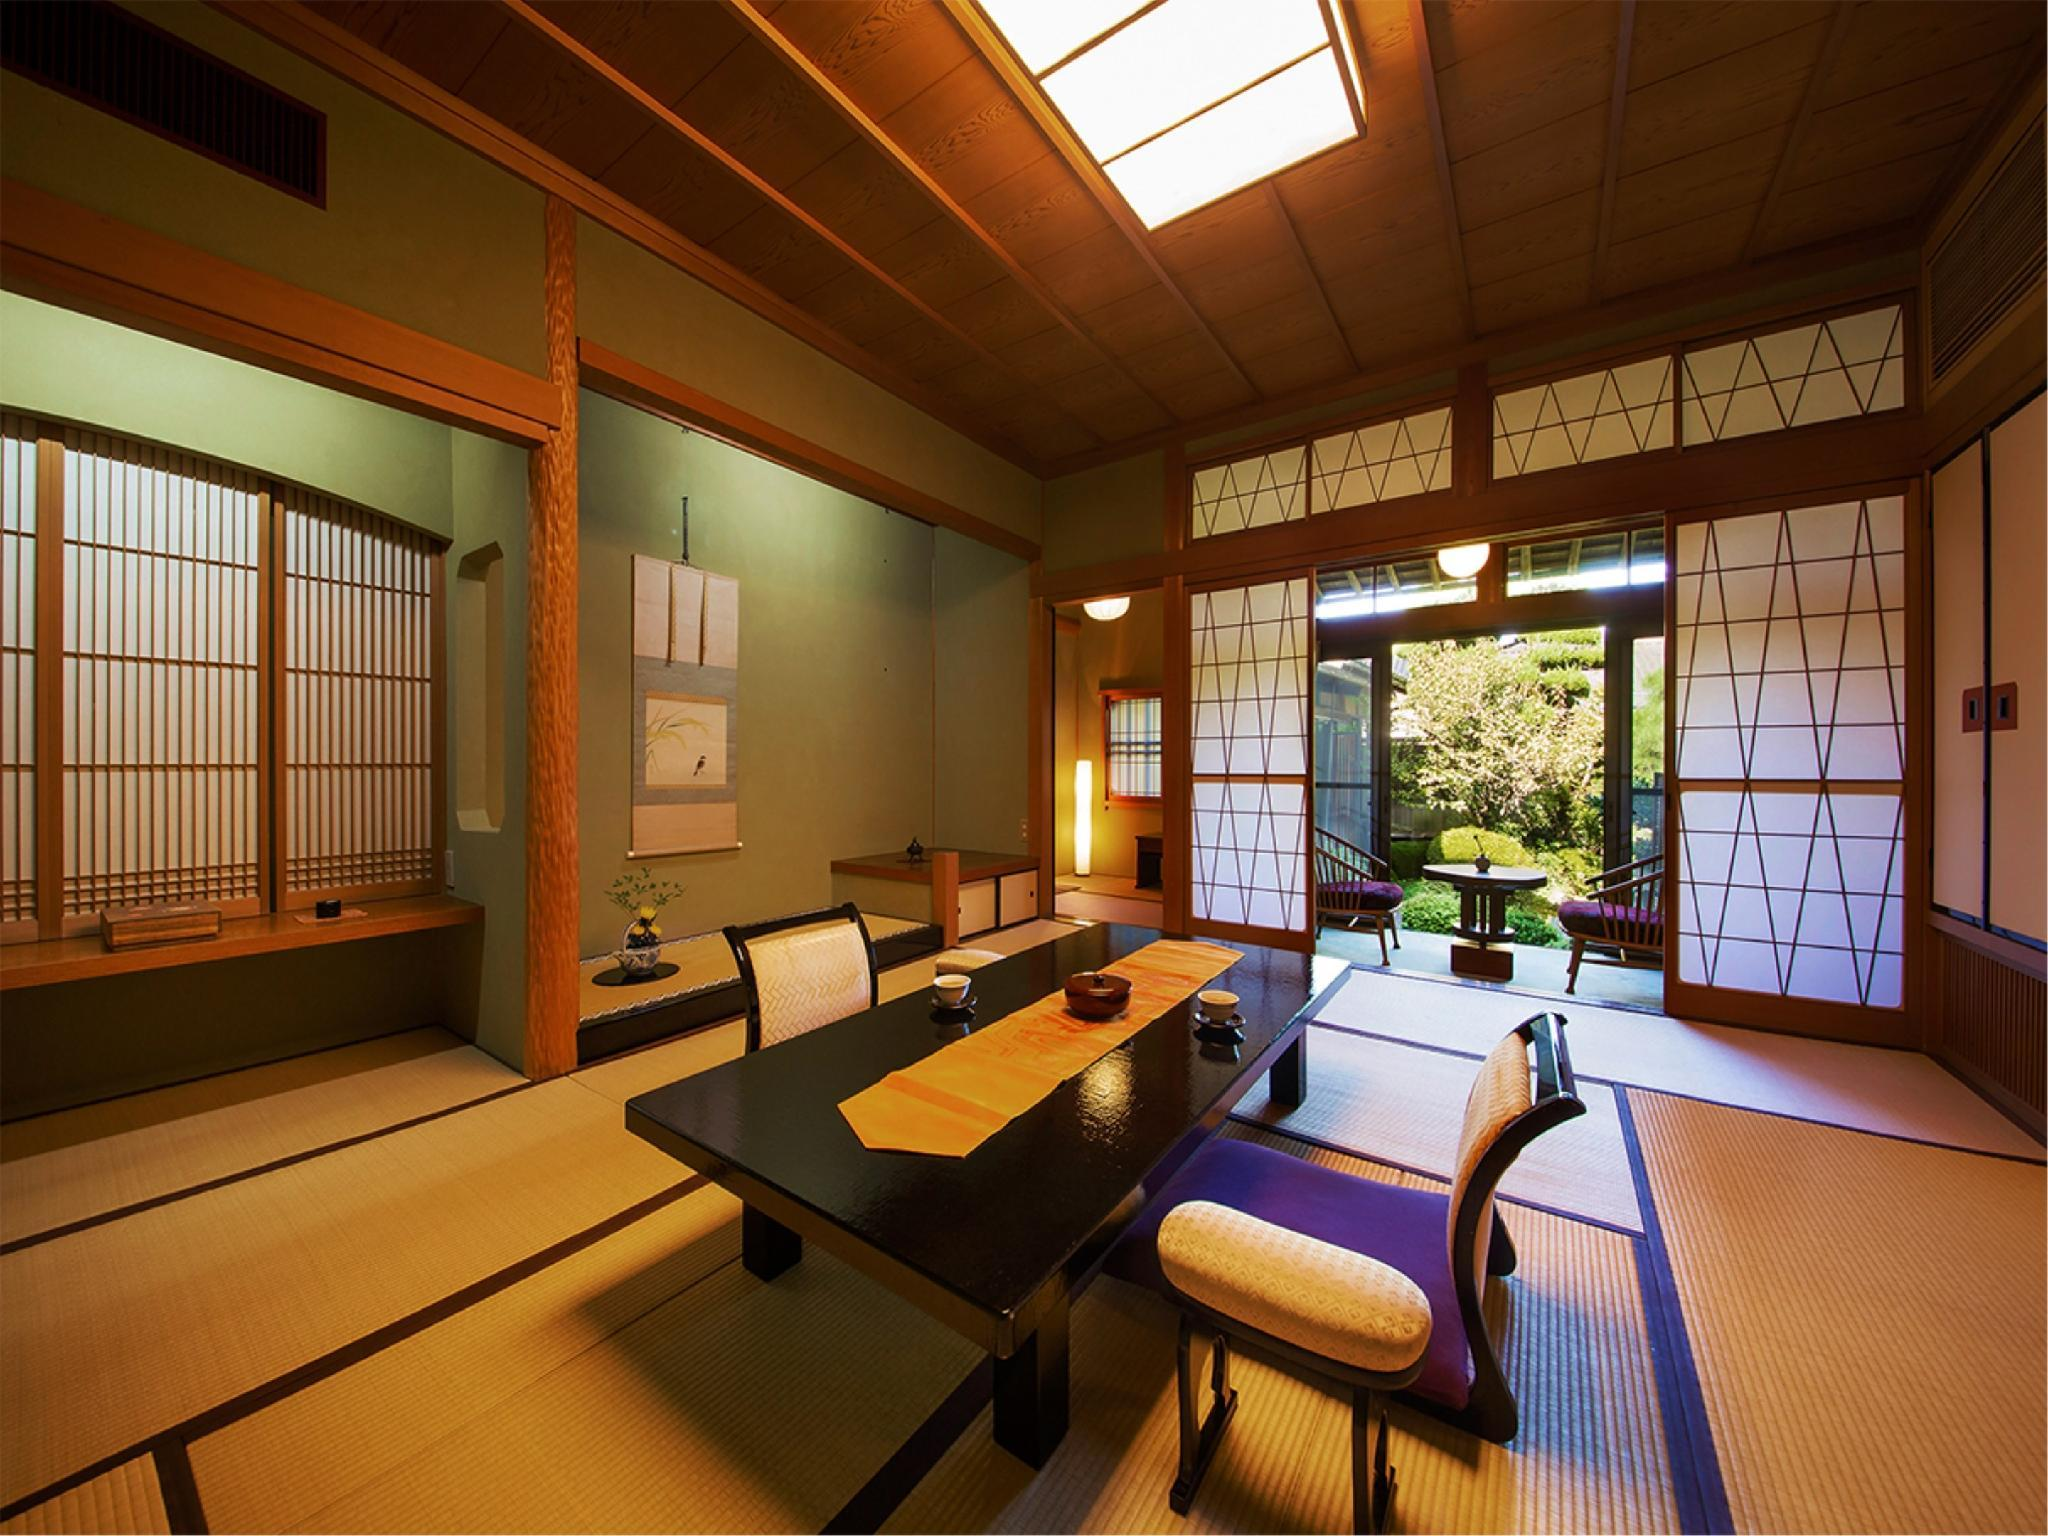 本館 和式房(2020年10月1日起禁菸) (Japanese-style Room  (Main Building) (*Non-smoking from 2020/10/1))